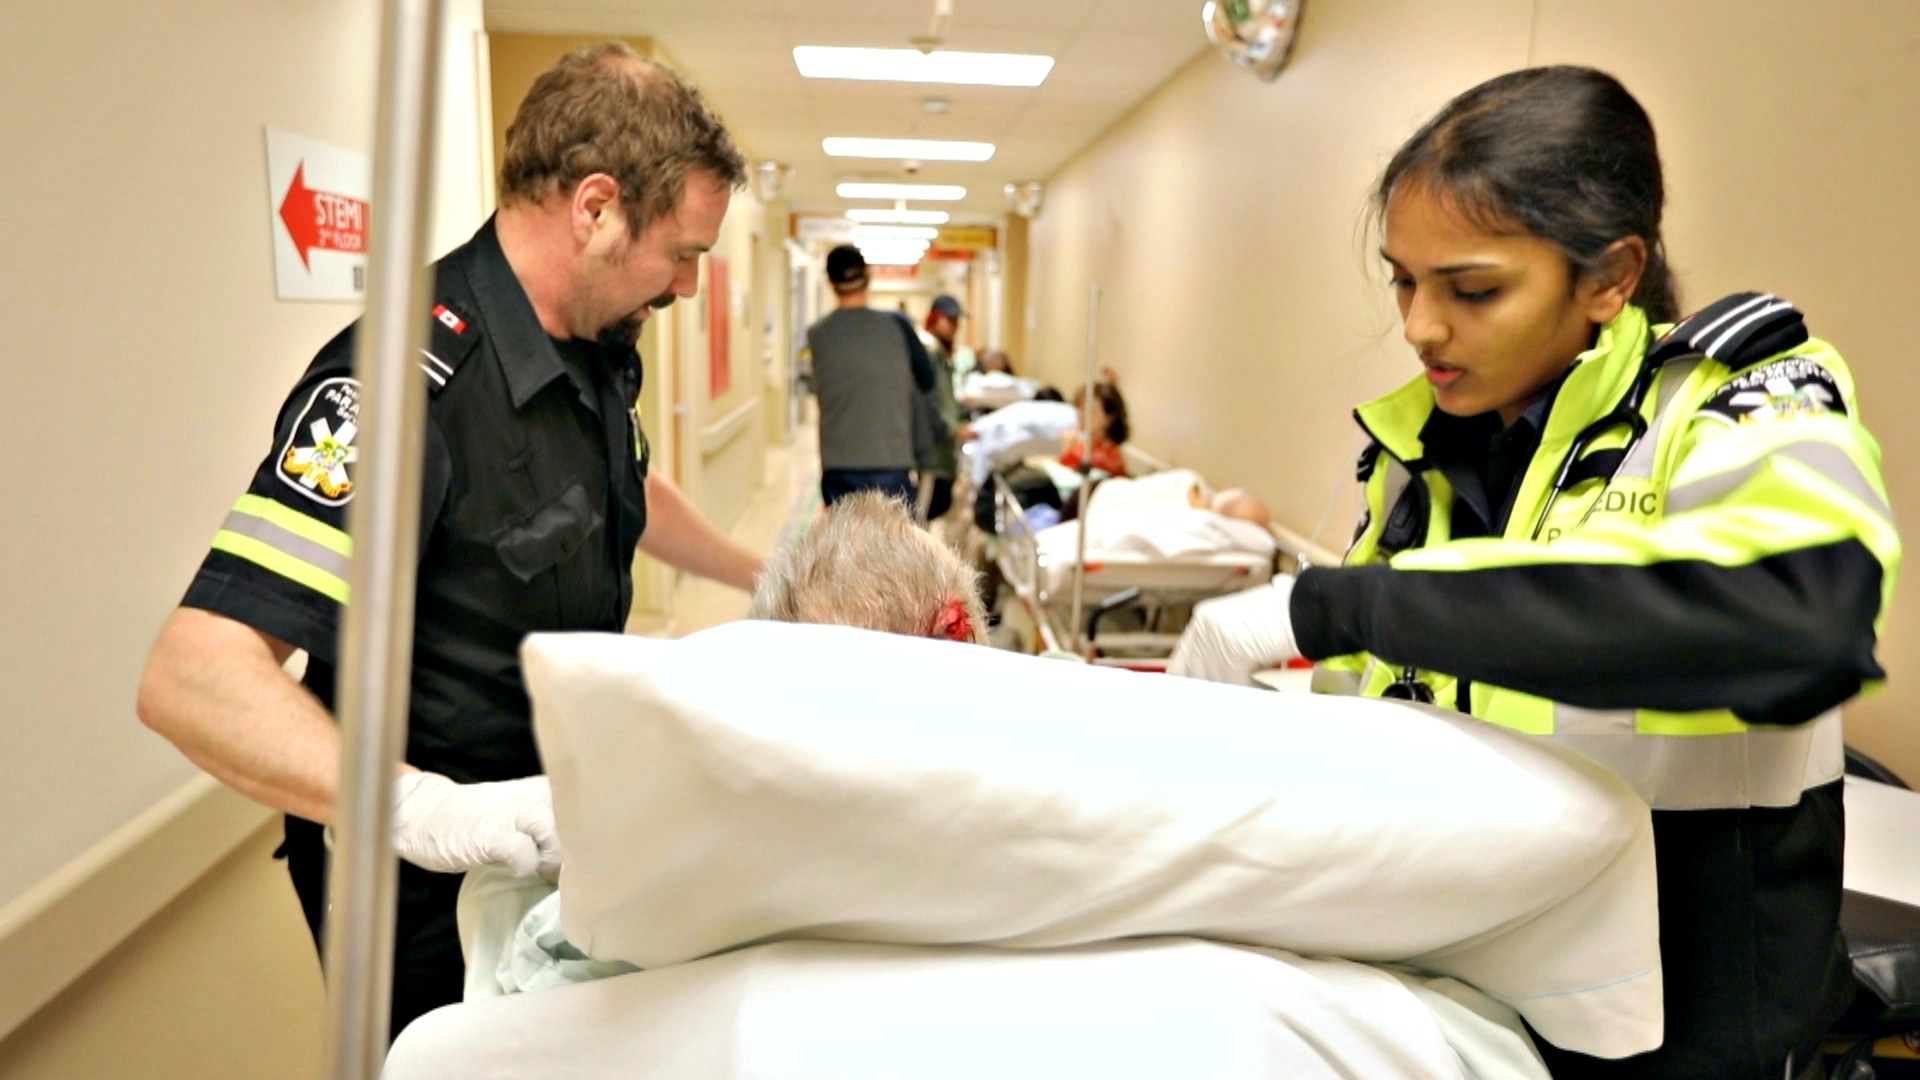 Shortly before 7 p.m., paramedics bring another patient into the already-crowded hallway. (Paul Borkwood/CBC News)